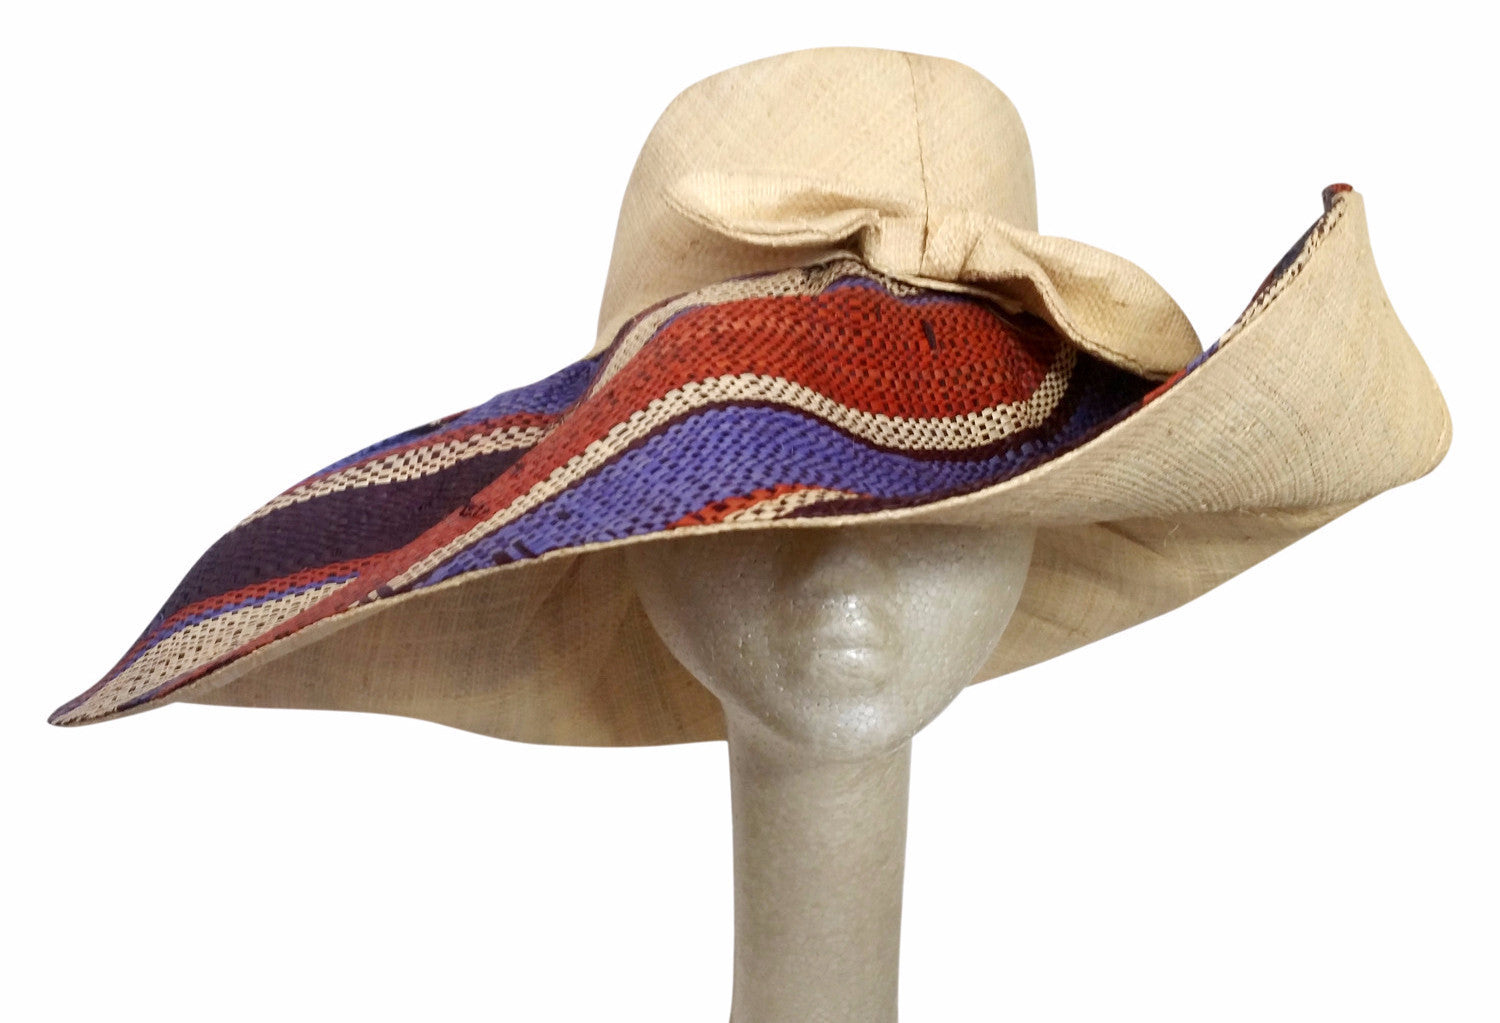 Nombeko: Hand Woven Multicolored Madagascar Big Brim Raffia Sun Hat